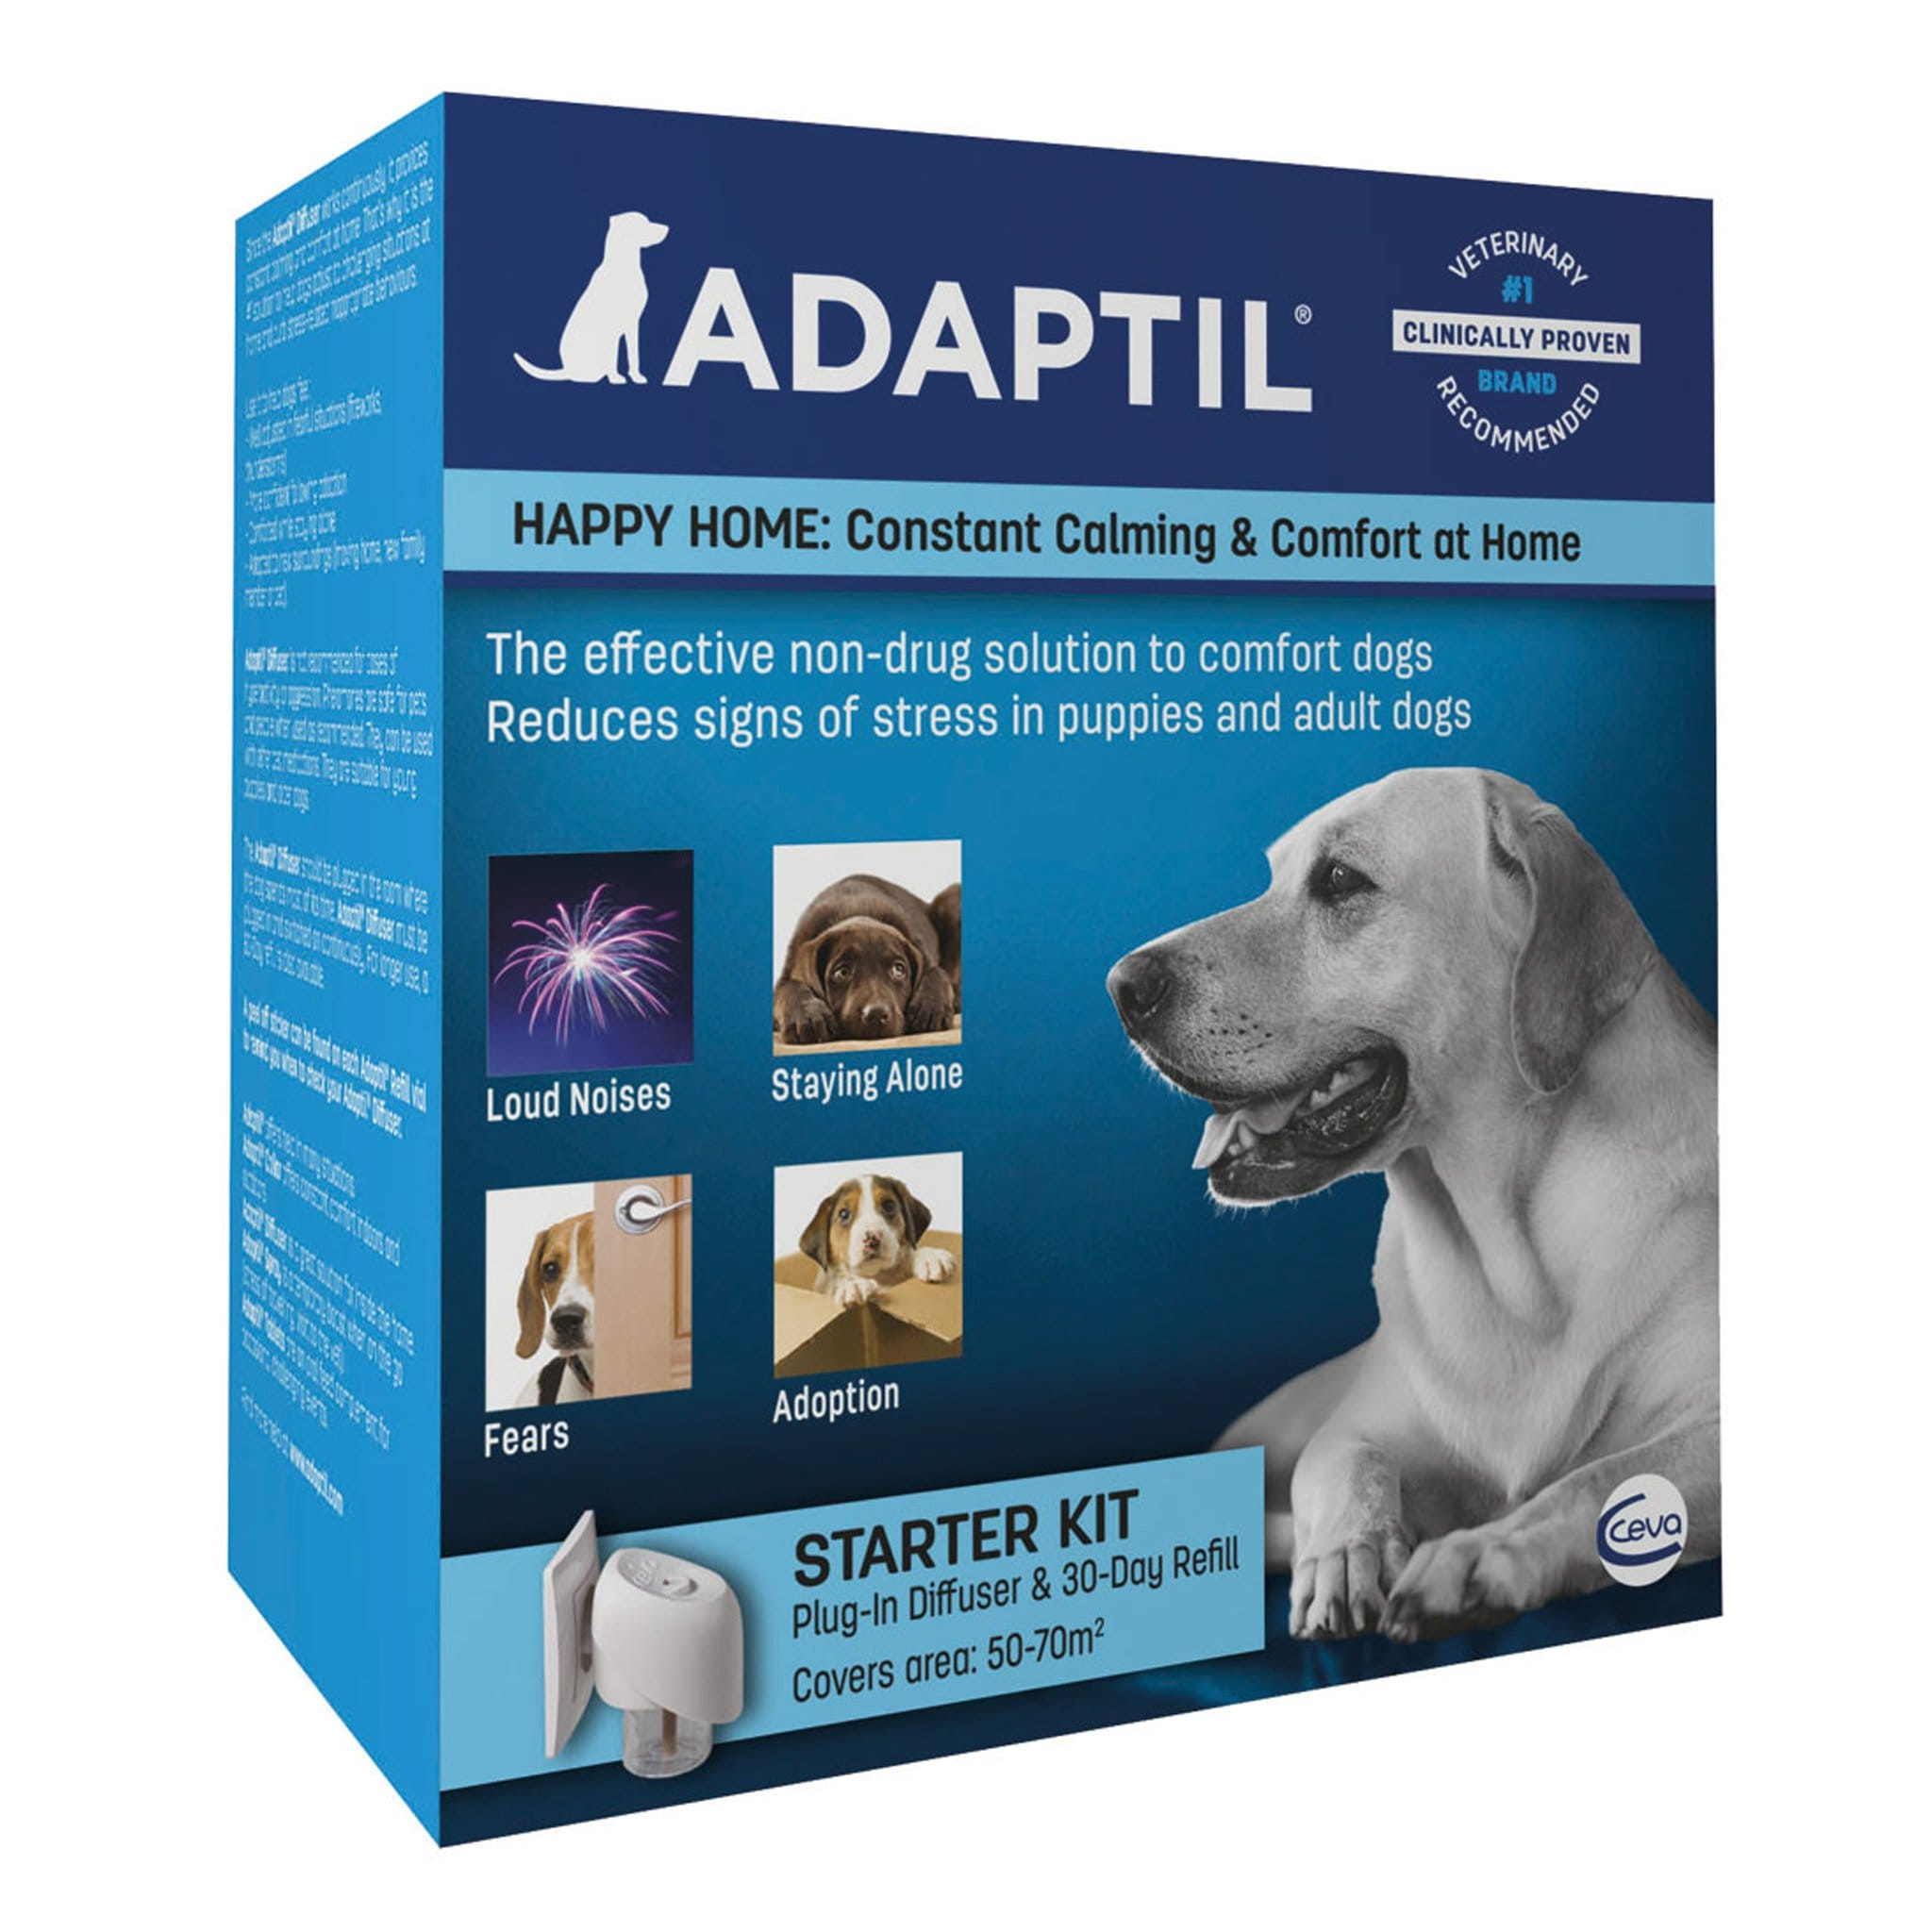 Adaptil For Dogs 7128 Starter Kit Plug-In